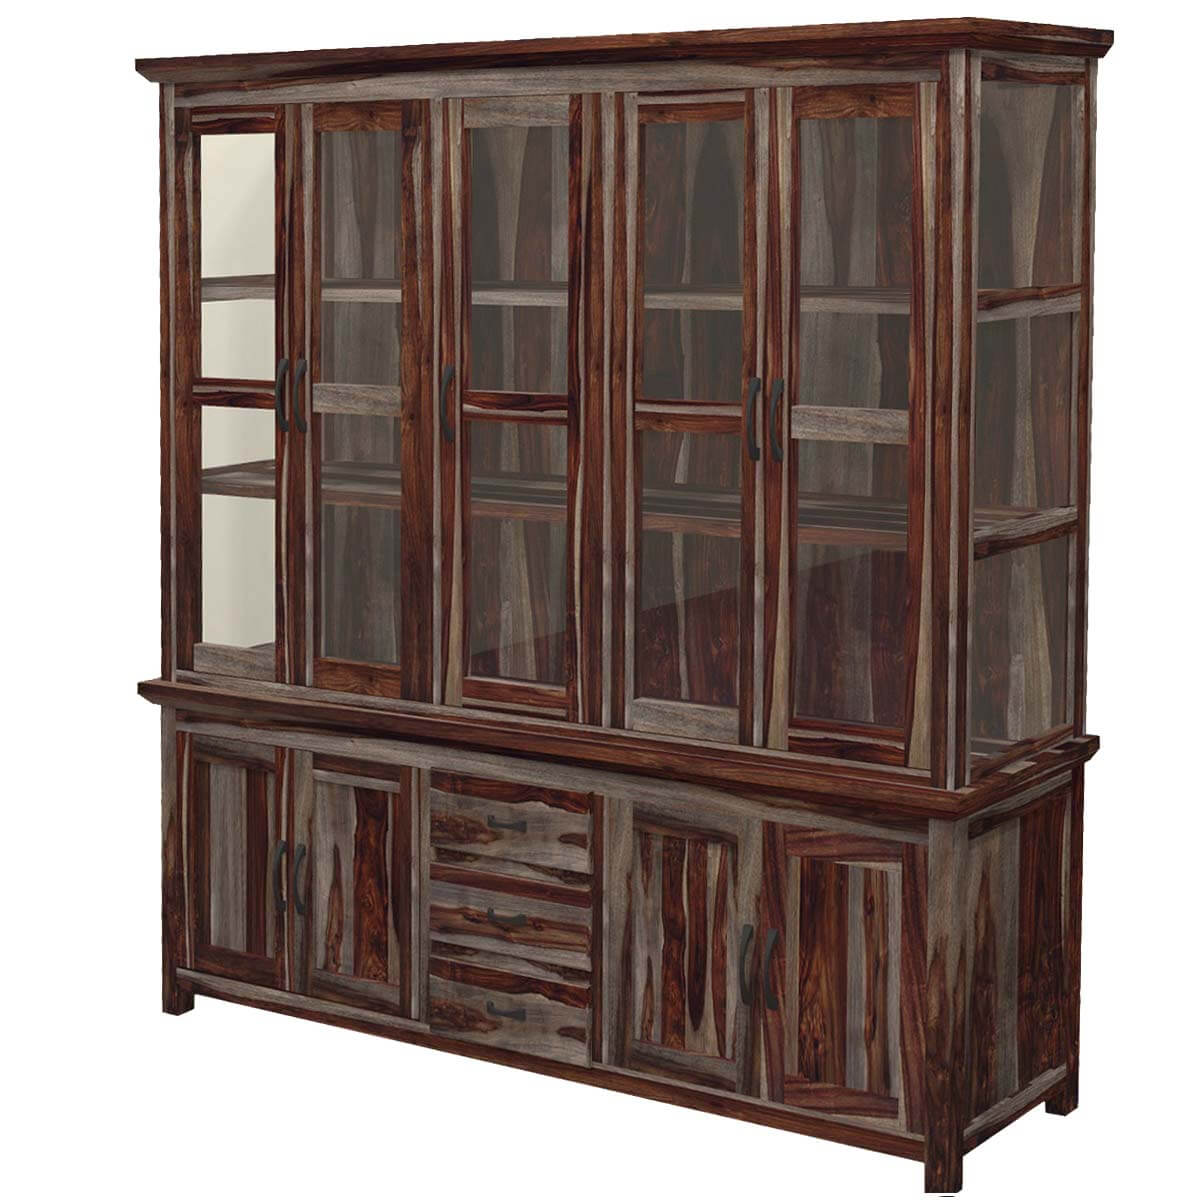 Dallas Ranch Solid Wood Handcrafted Dining Room Hutch